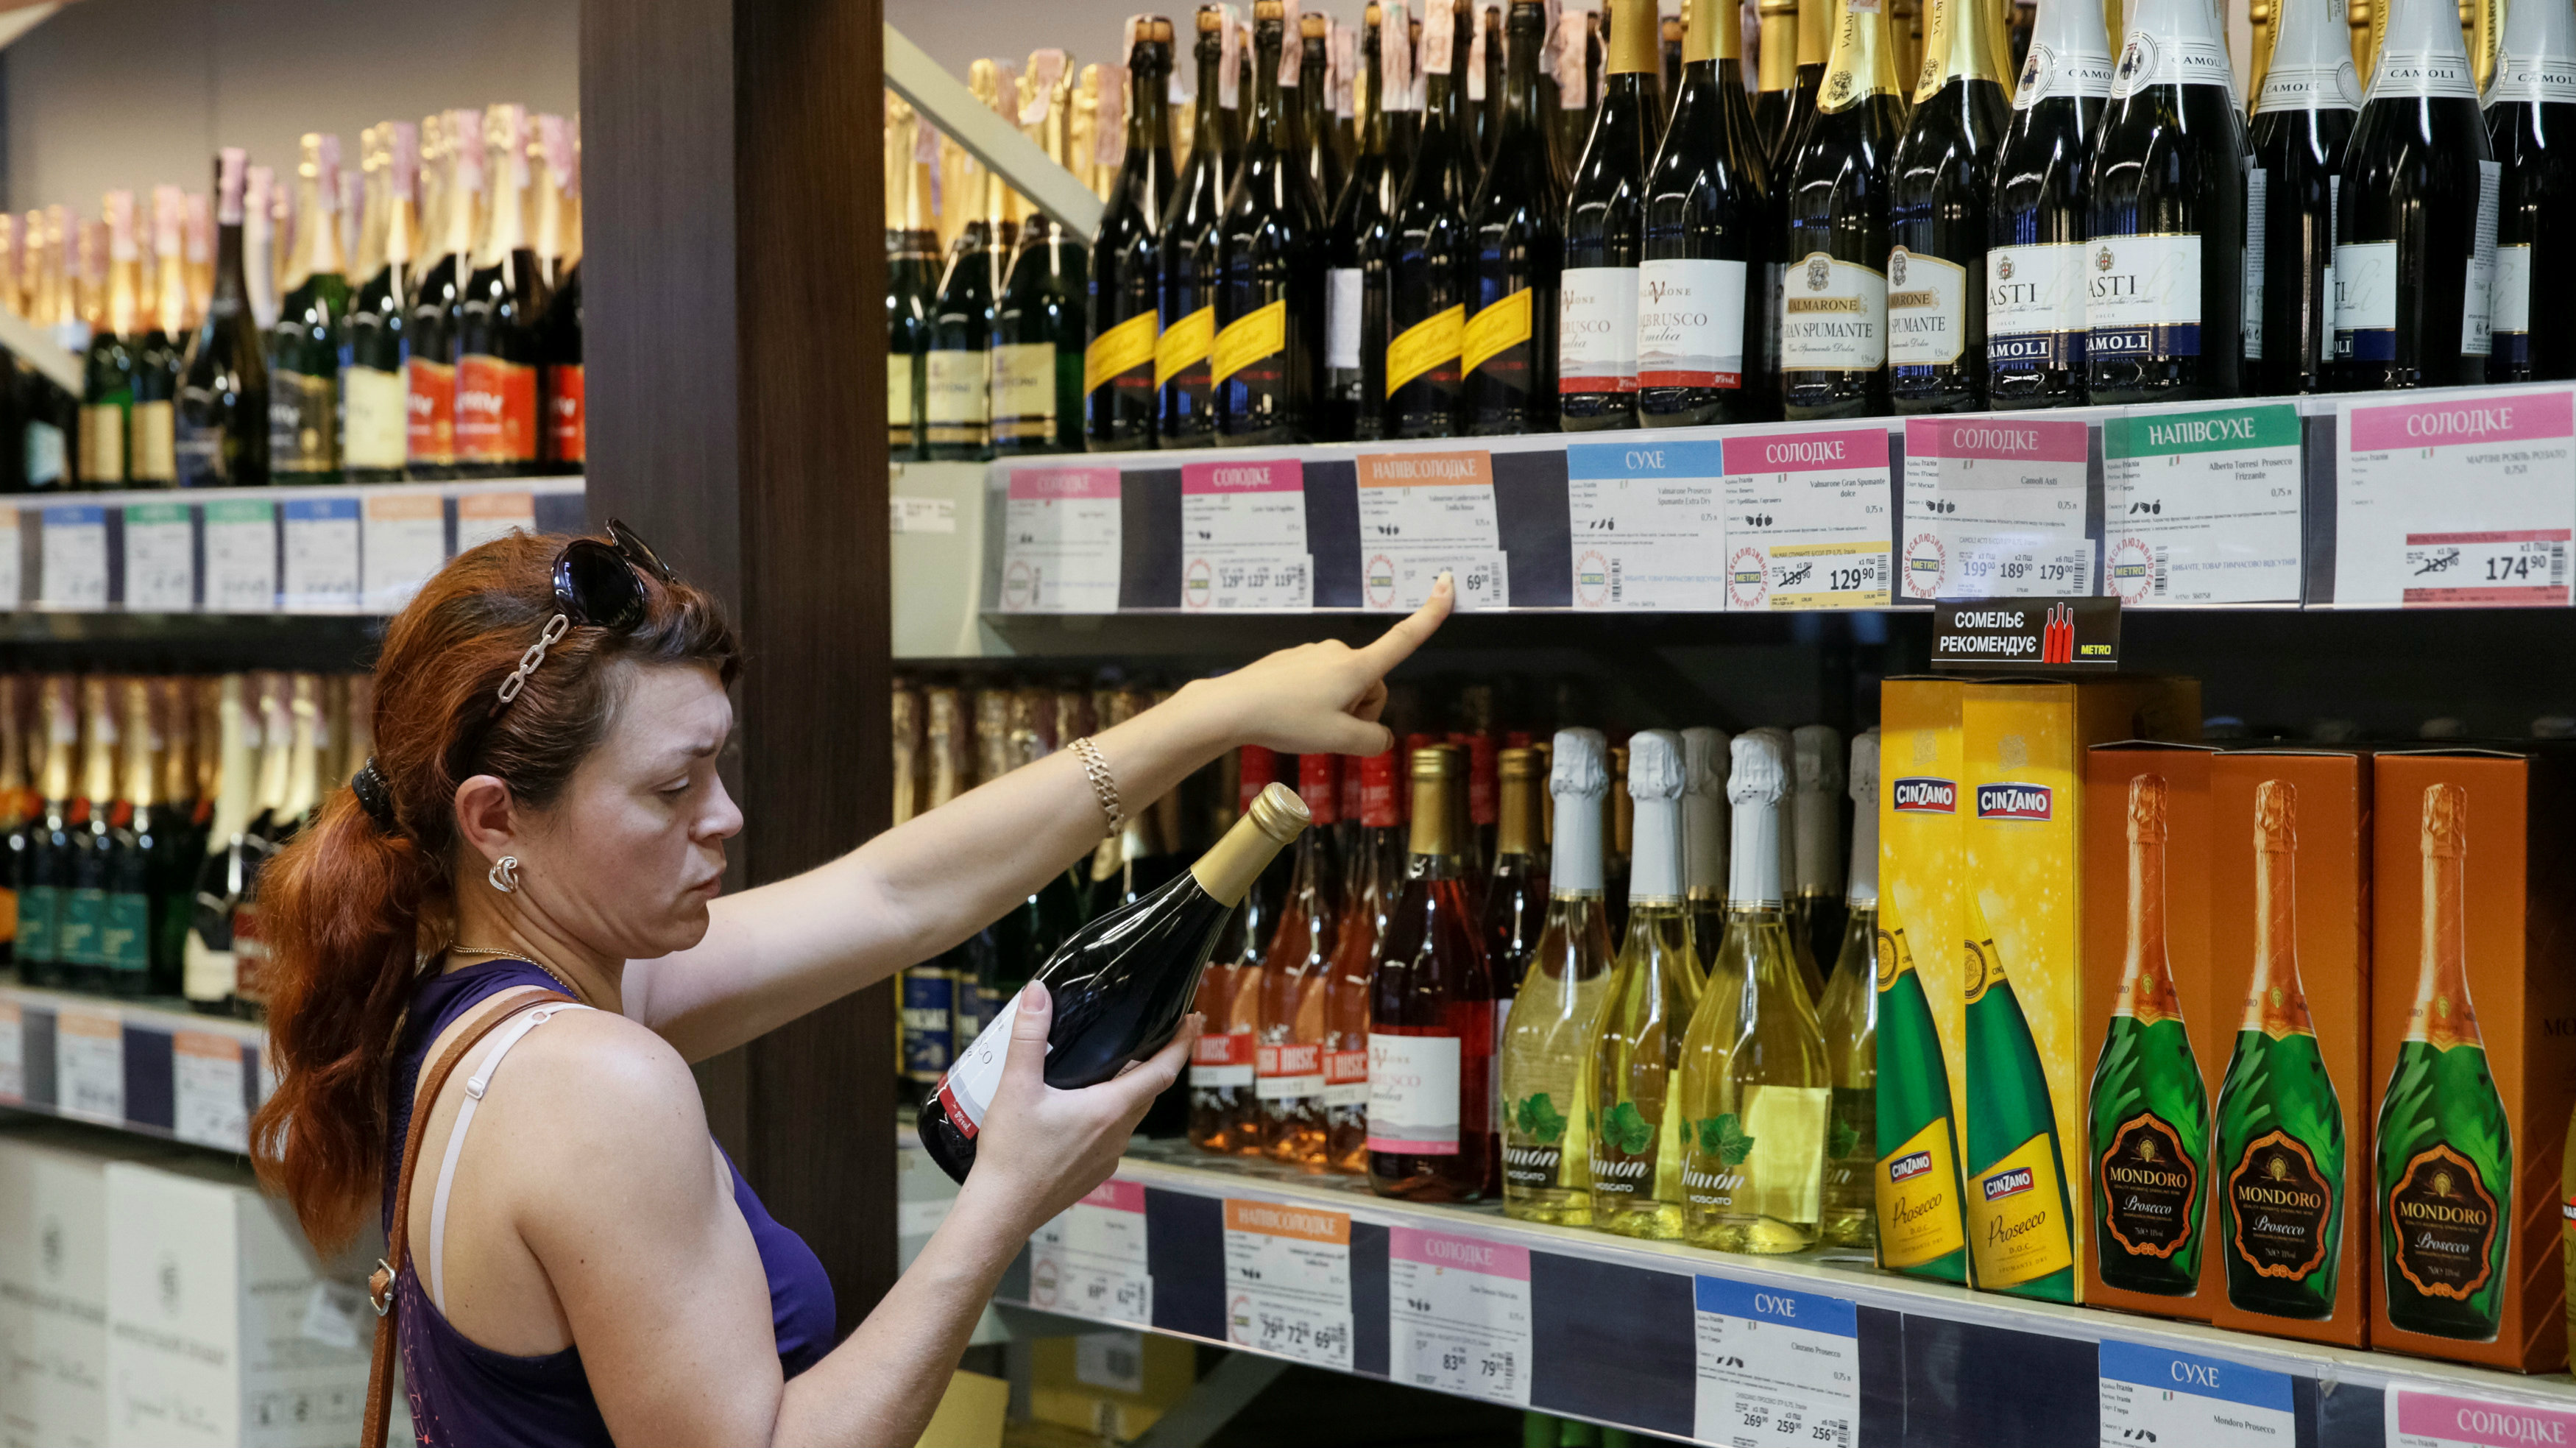 A woman buys a bottle of wine at a Metro cash and carry store in Kiev, Ukraine, August 17, 2016. REUTERS/Valentyn Ogirenko